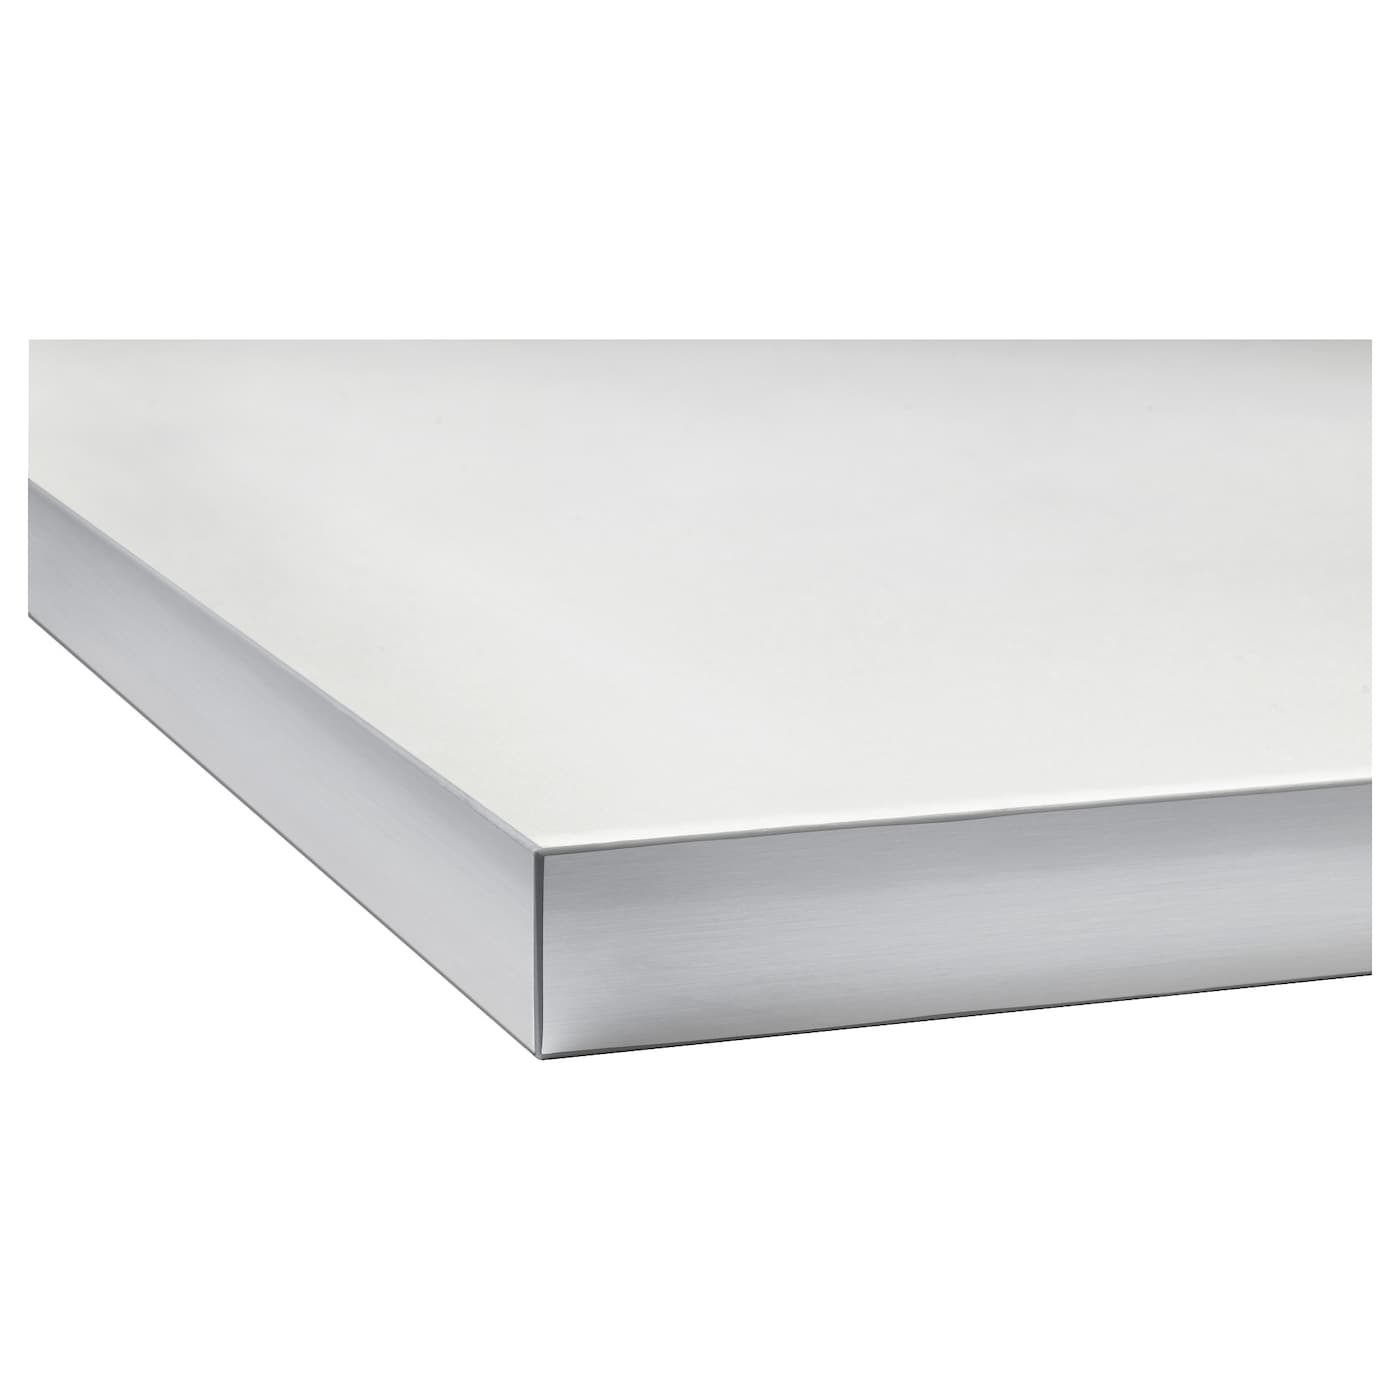 IKEA HÄLLESTAD worktop, double-sided